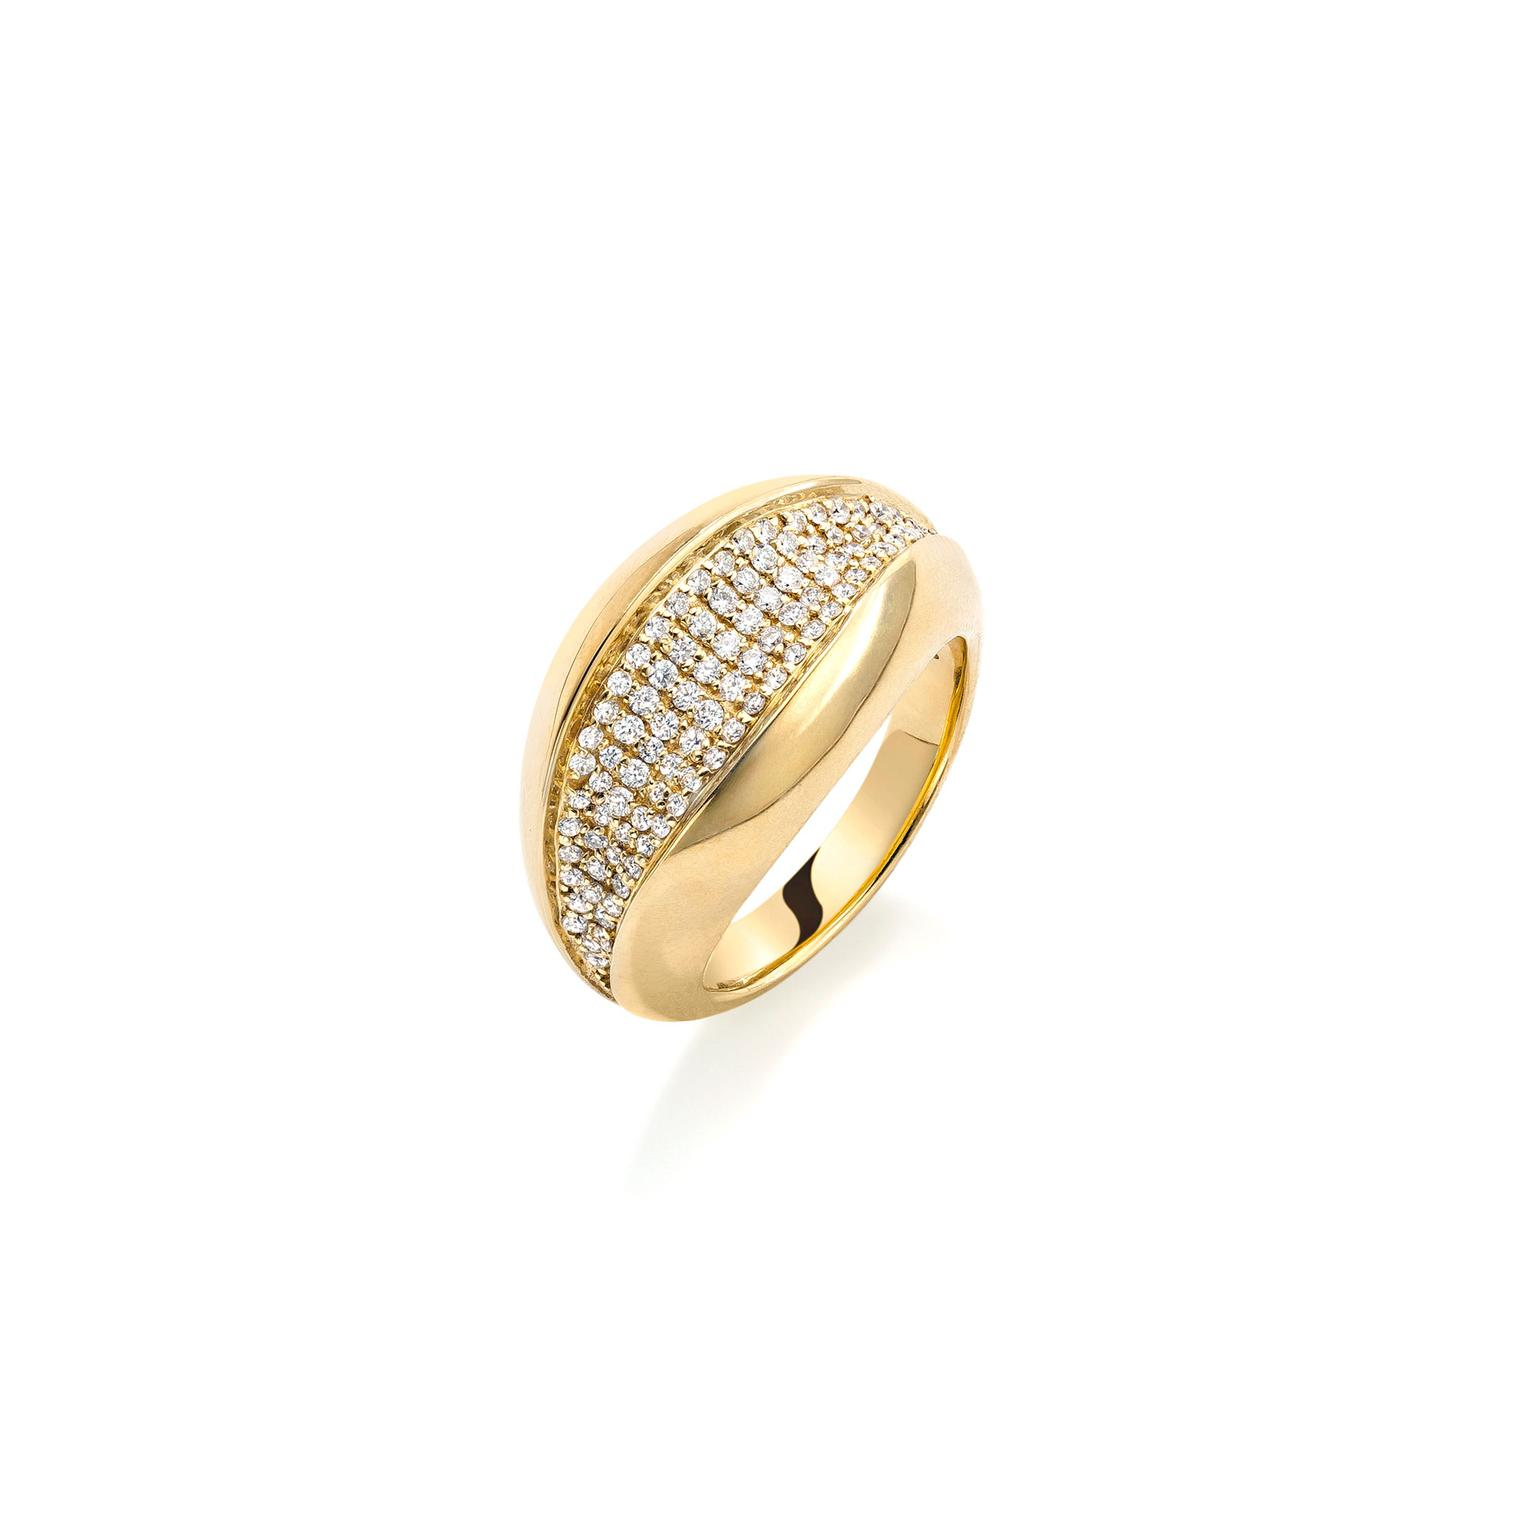 Mappin & Webb Wildfell yellow gold pavé ring